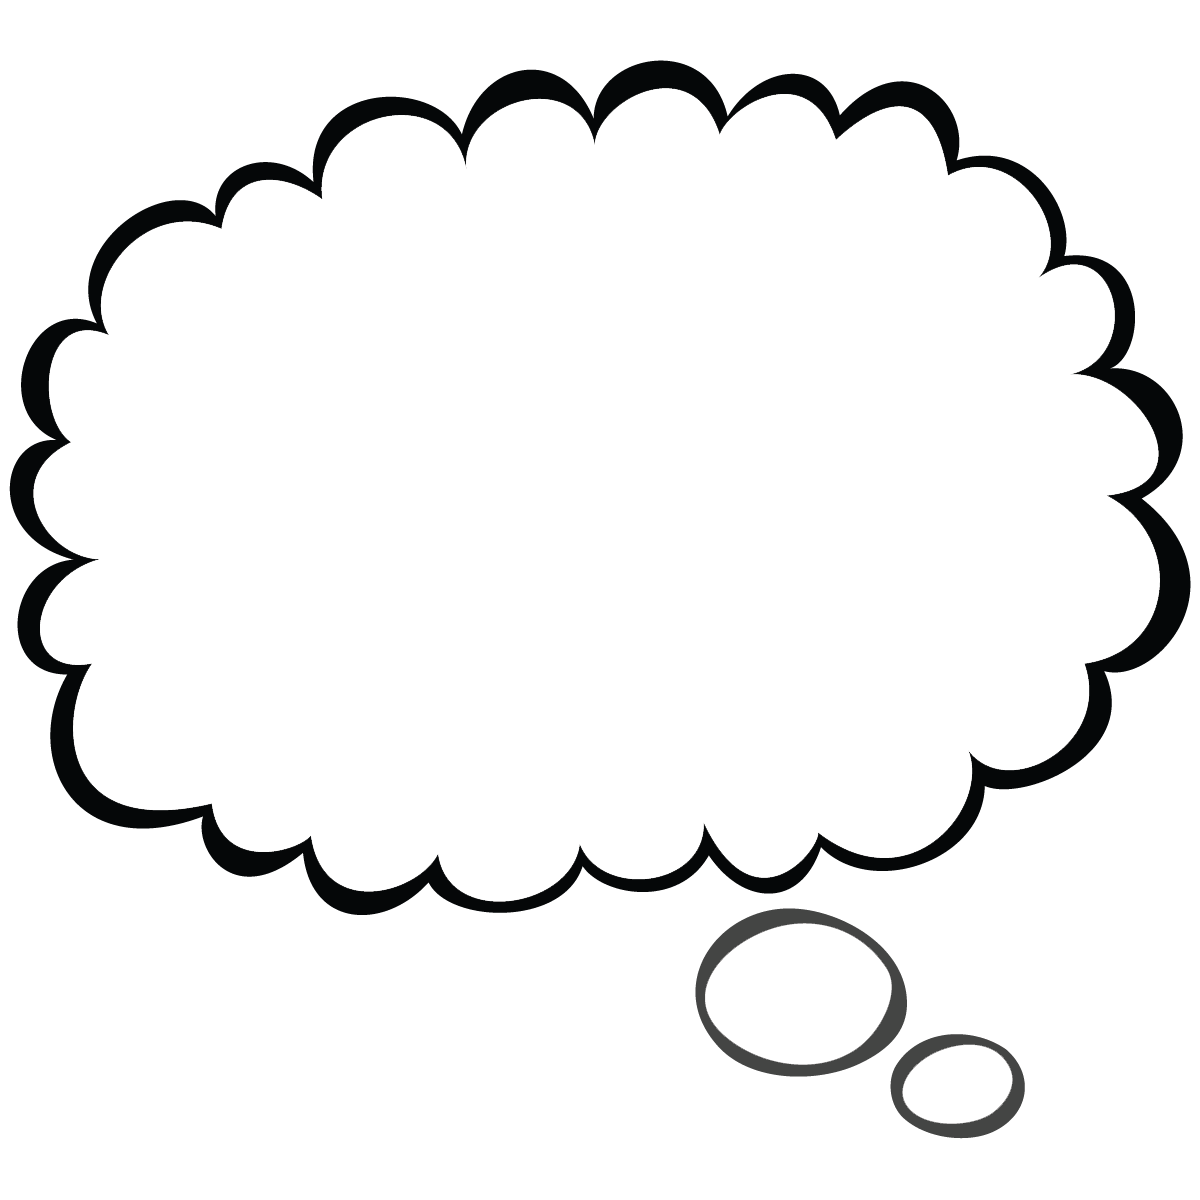 Quote Bubble Png - Thought Bubble PNG Transparent Images | PNG All